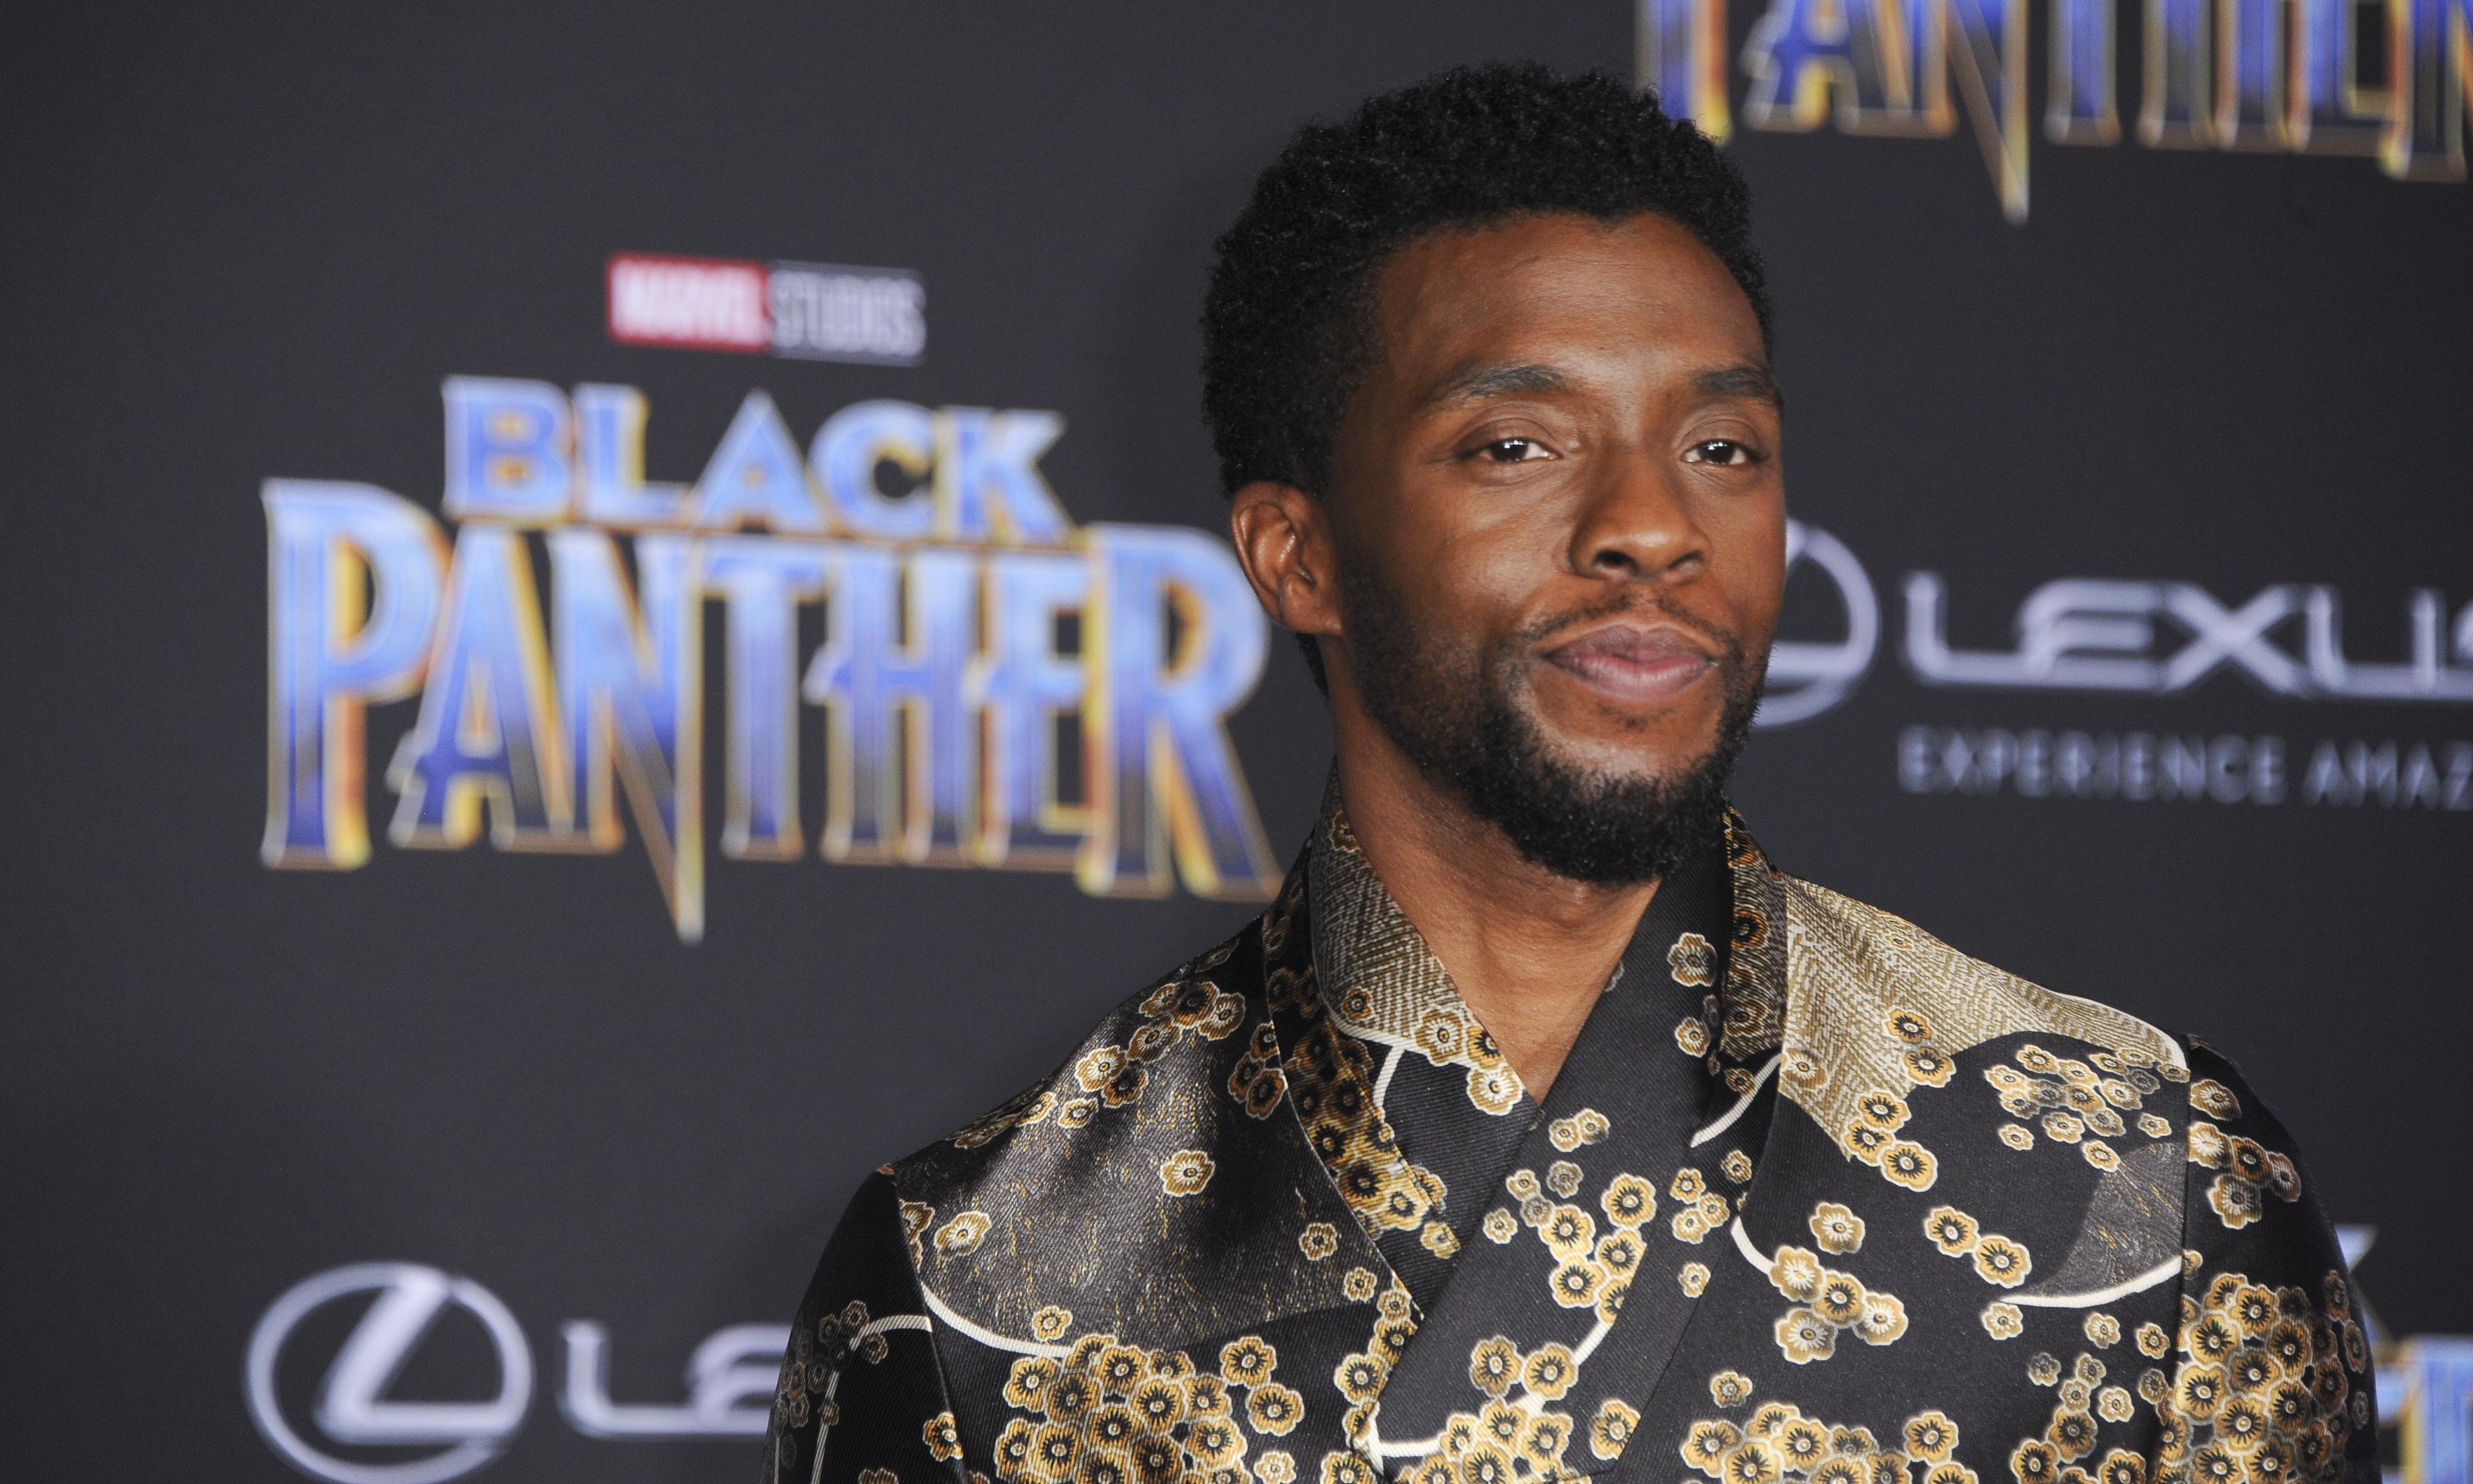 Film Premiere of Black Panther